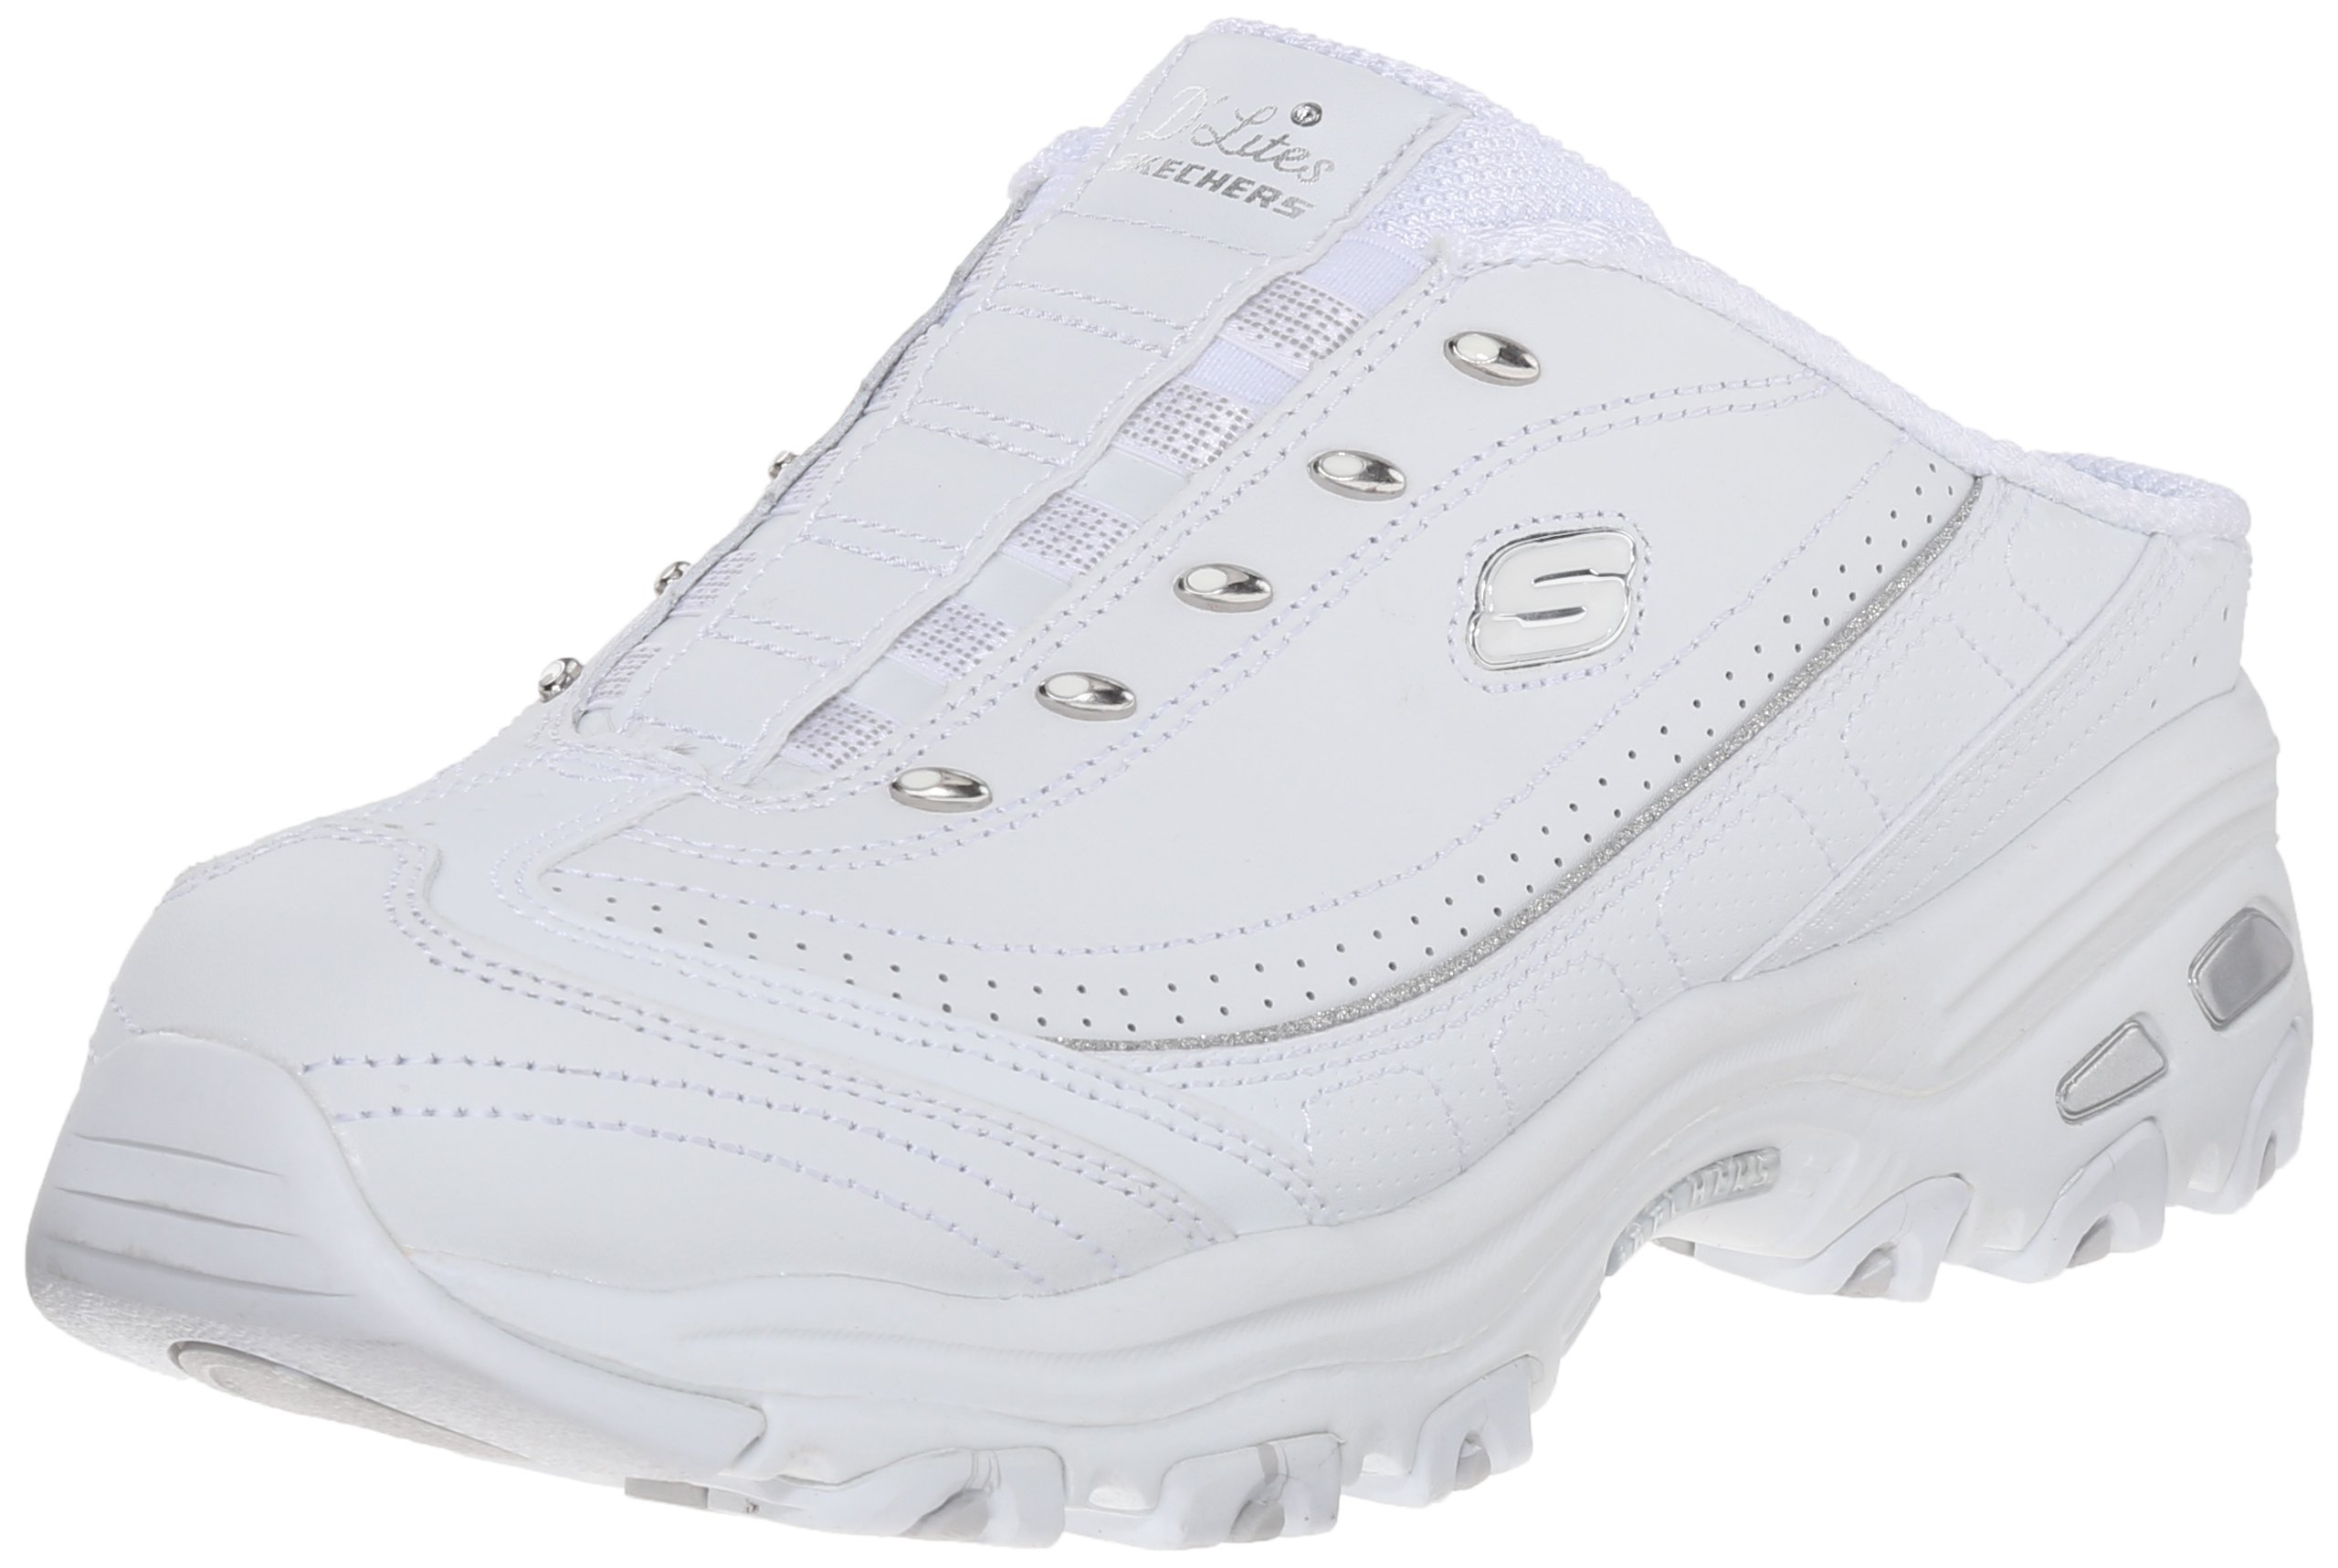 Skechers Sport Women's Bright Sky Fashion Sneaker, White/Silver, 11 M US